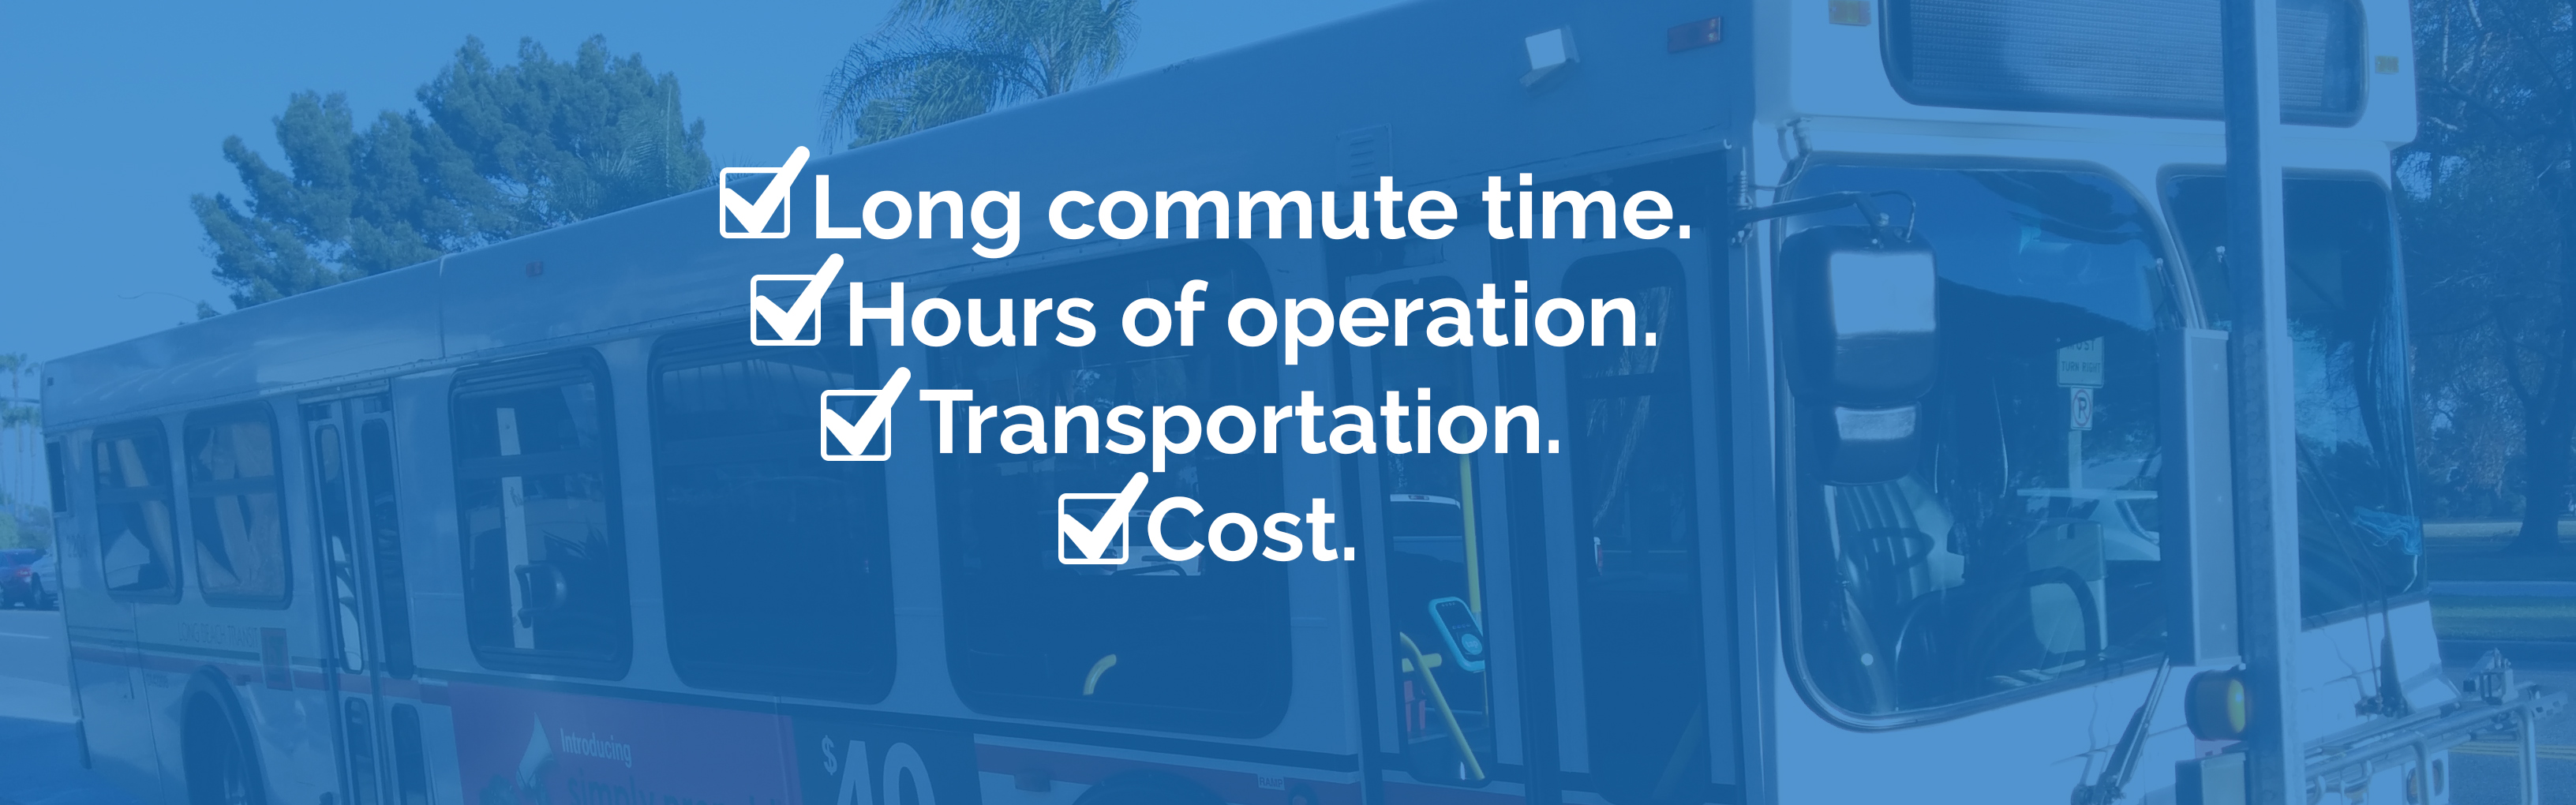 A four-item checklist overlays a picture of a bus. The items are Long commute time, Hours of operation, Transportation, and Cost. All items are checked.